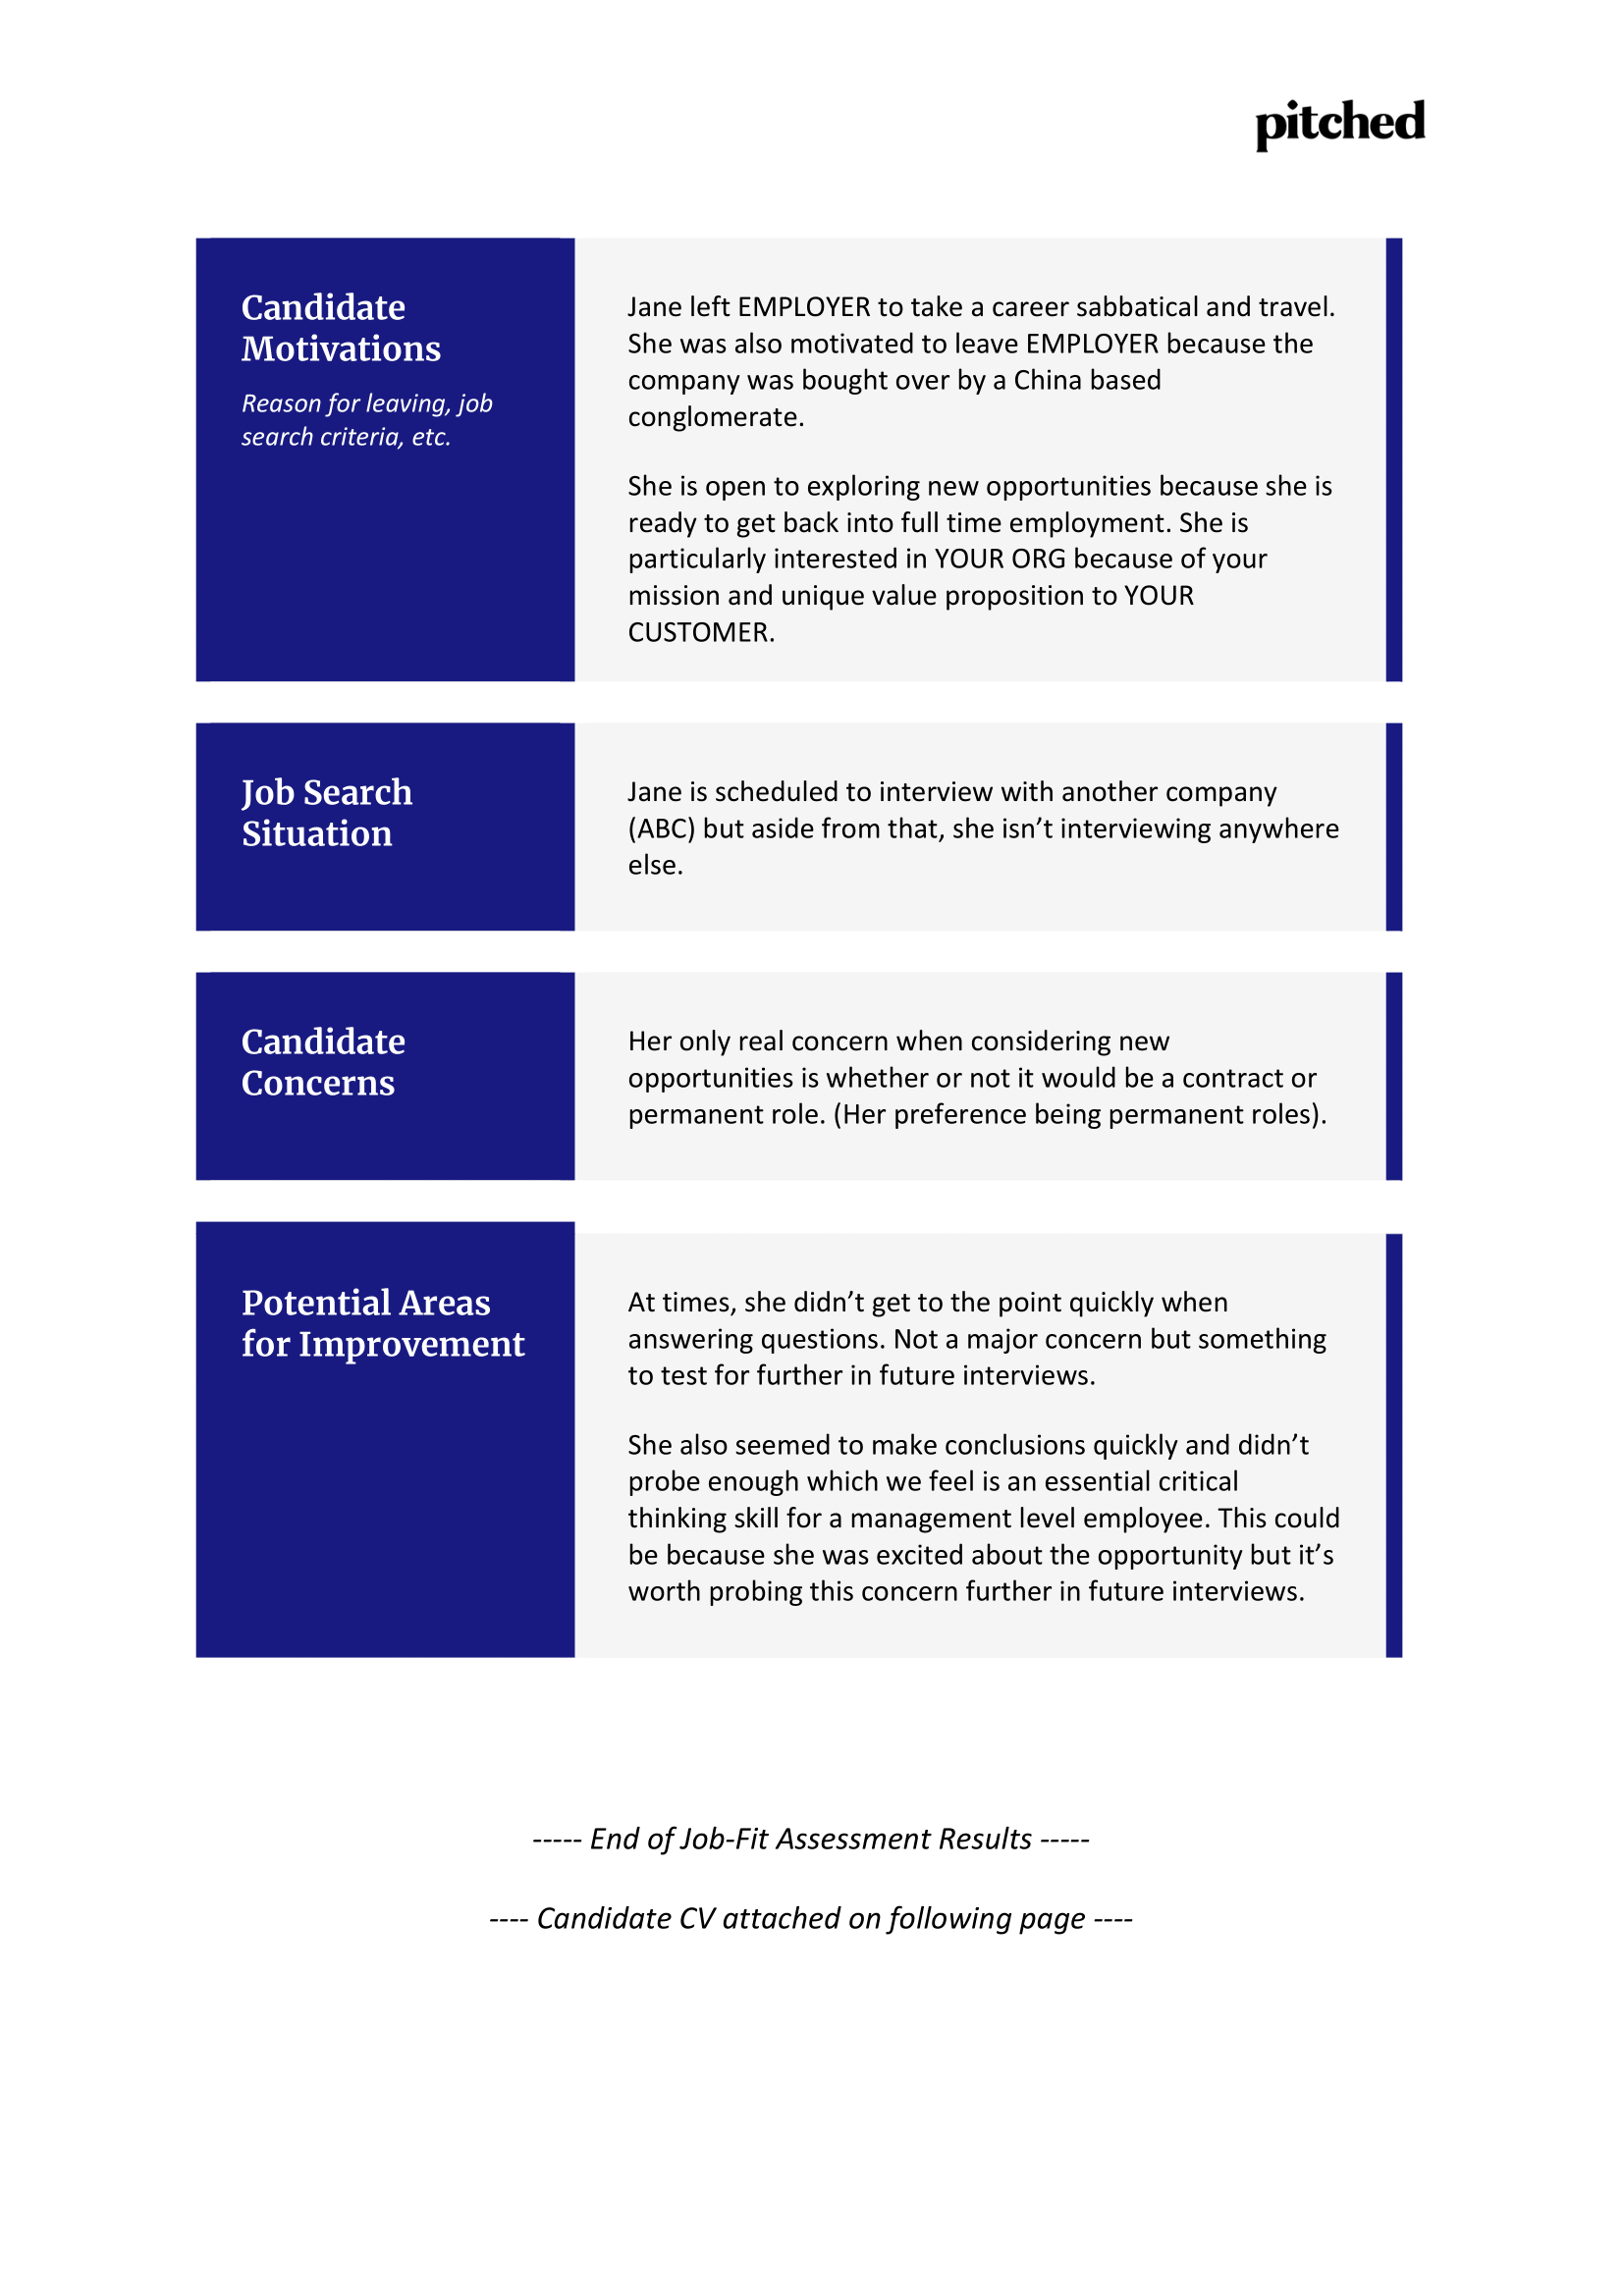 Pitched Template Candidate Profile-3.png